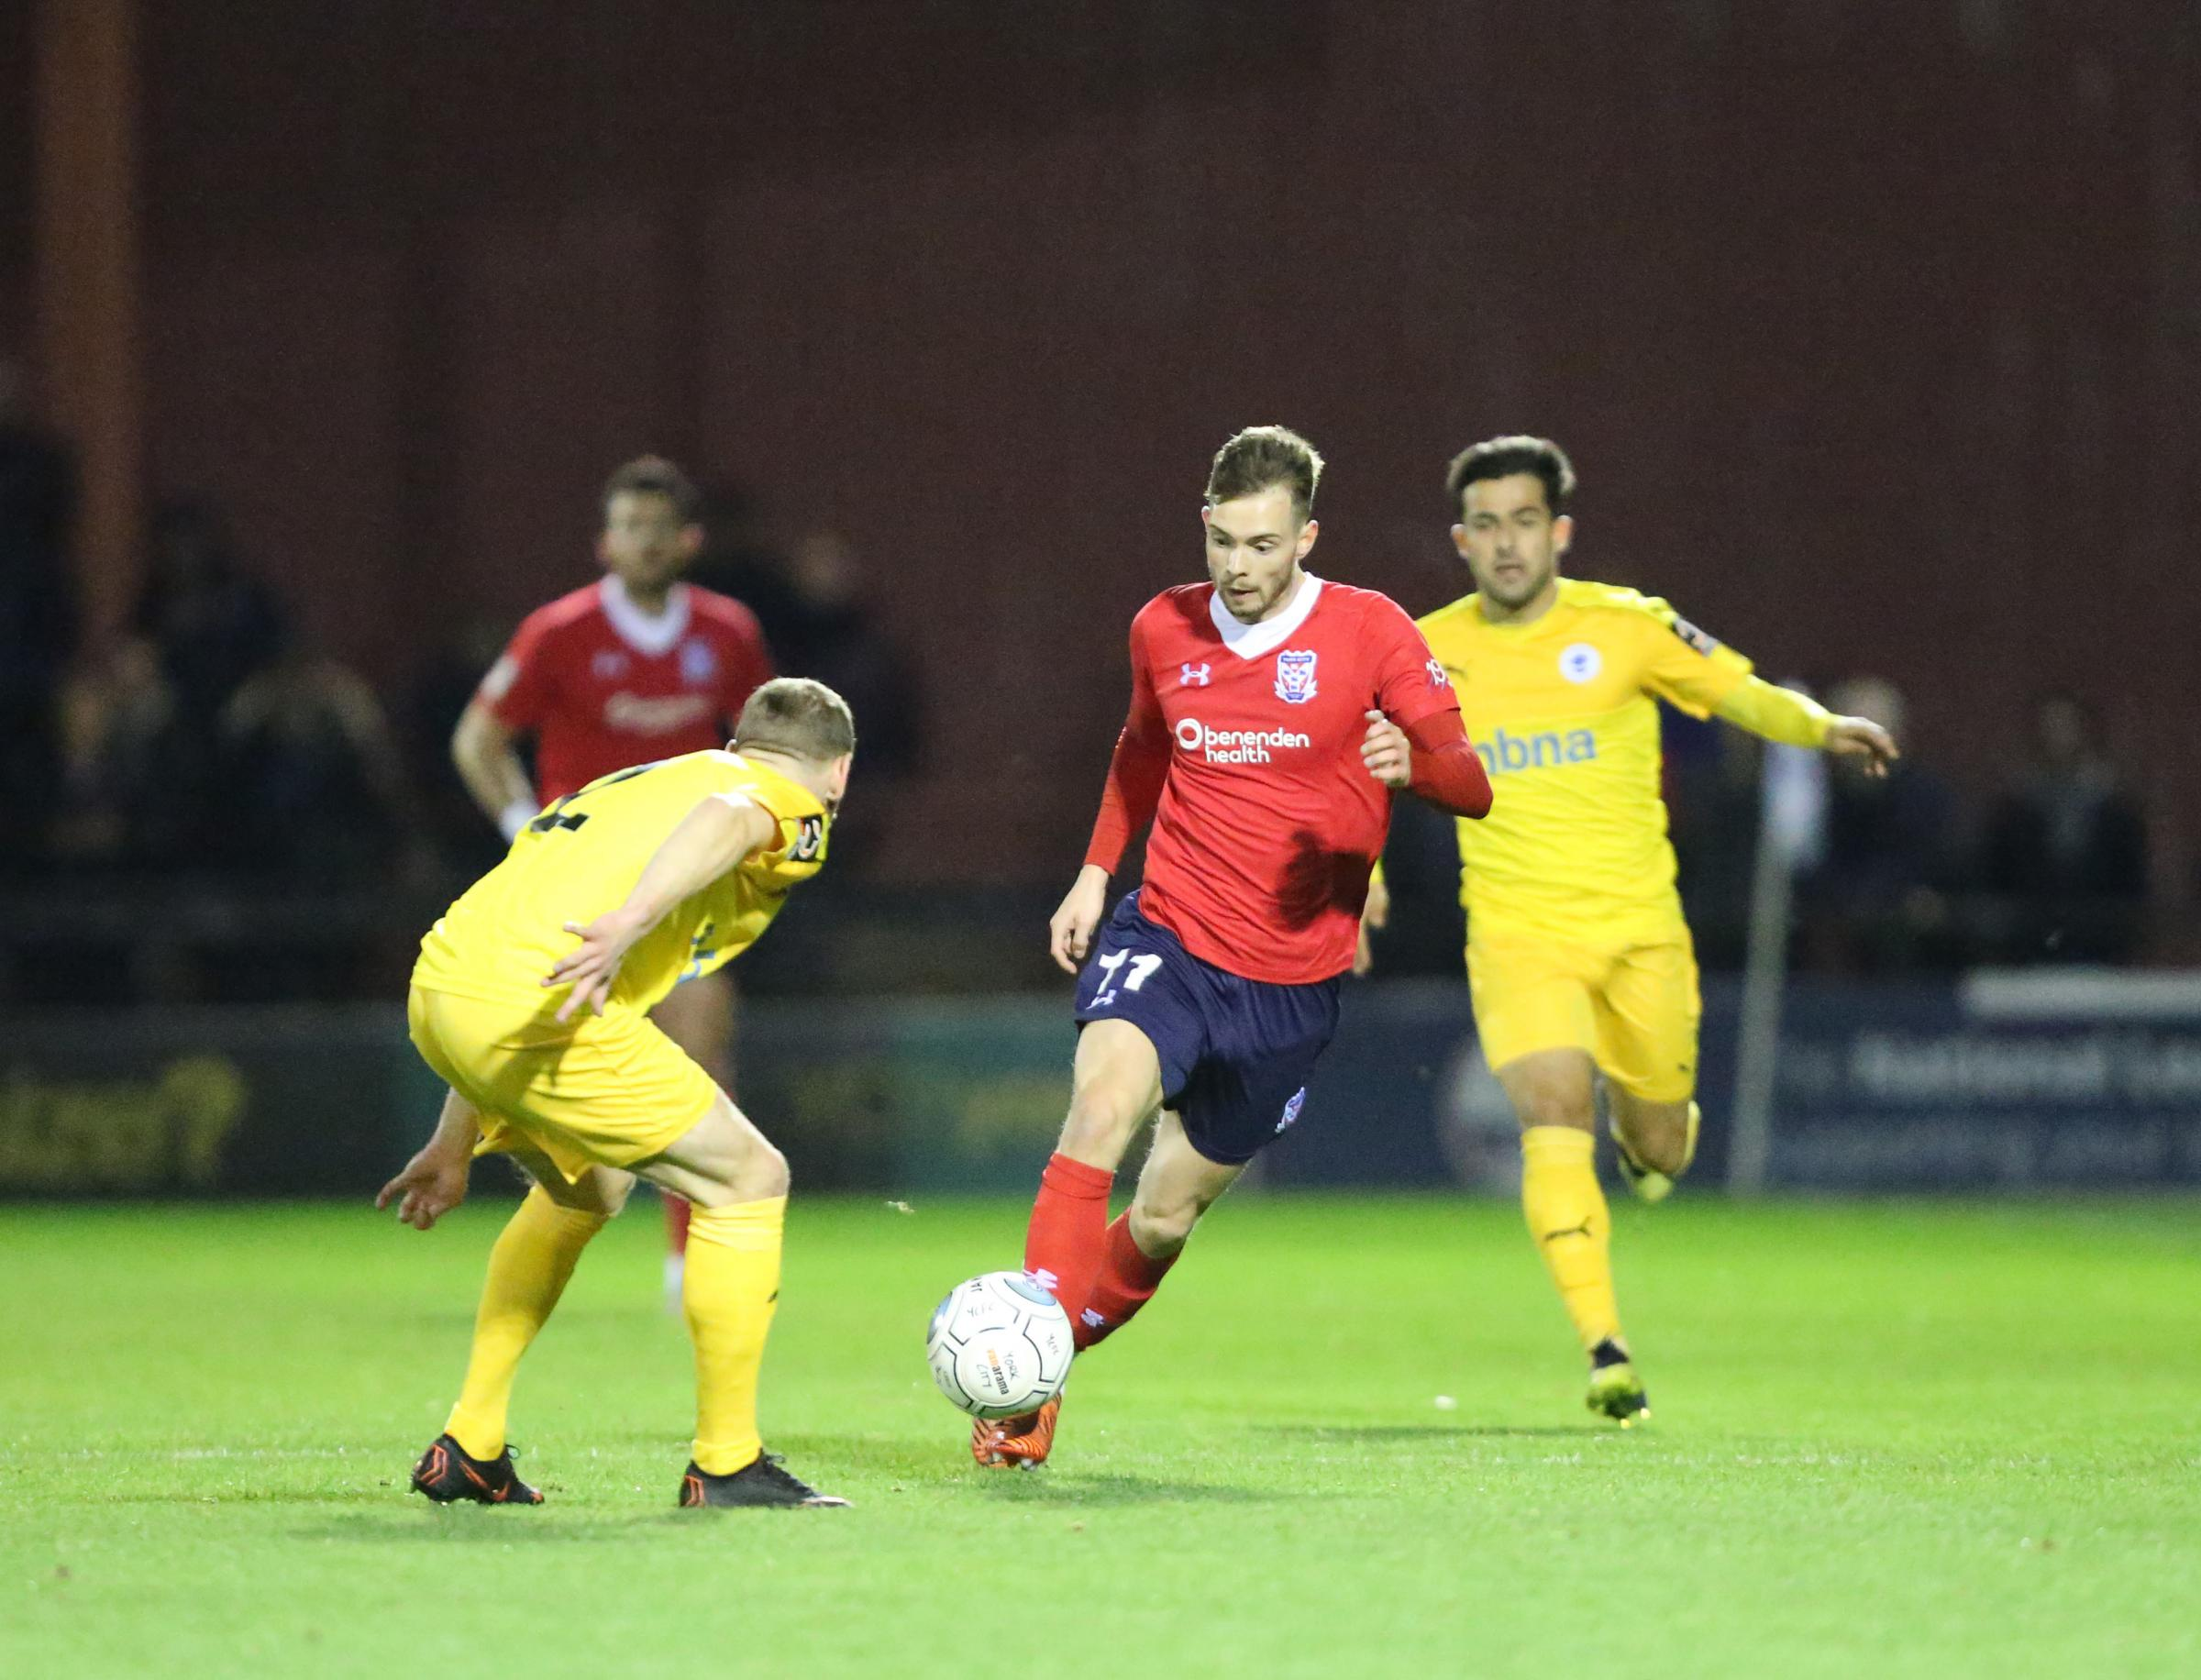 LOOKING FORWARD: Alex Bray is focussed on helping York City climb the National League North table during his loan move from Championship club Rotherham. Picture: Gordon Clayton